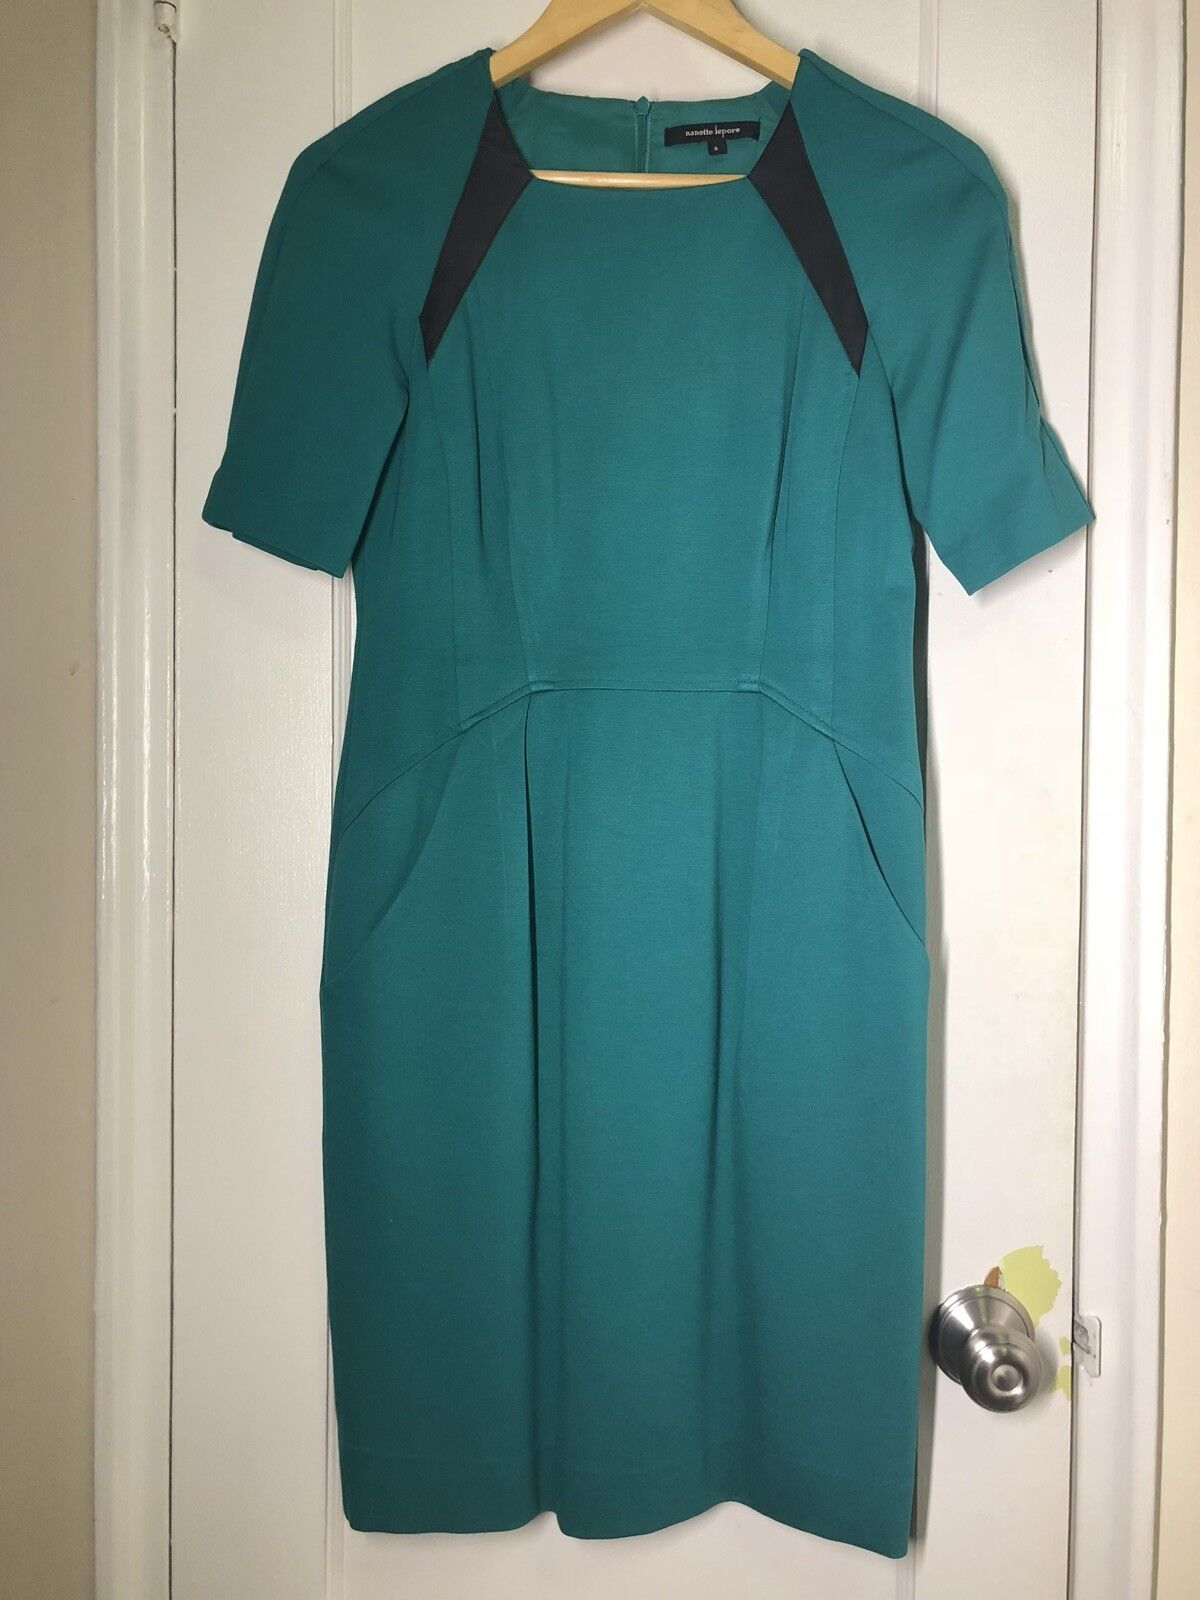 Nanette Lepore Teal Stretch Fitted Dress